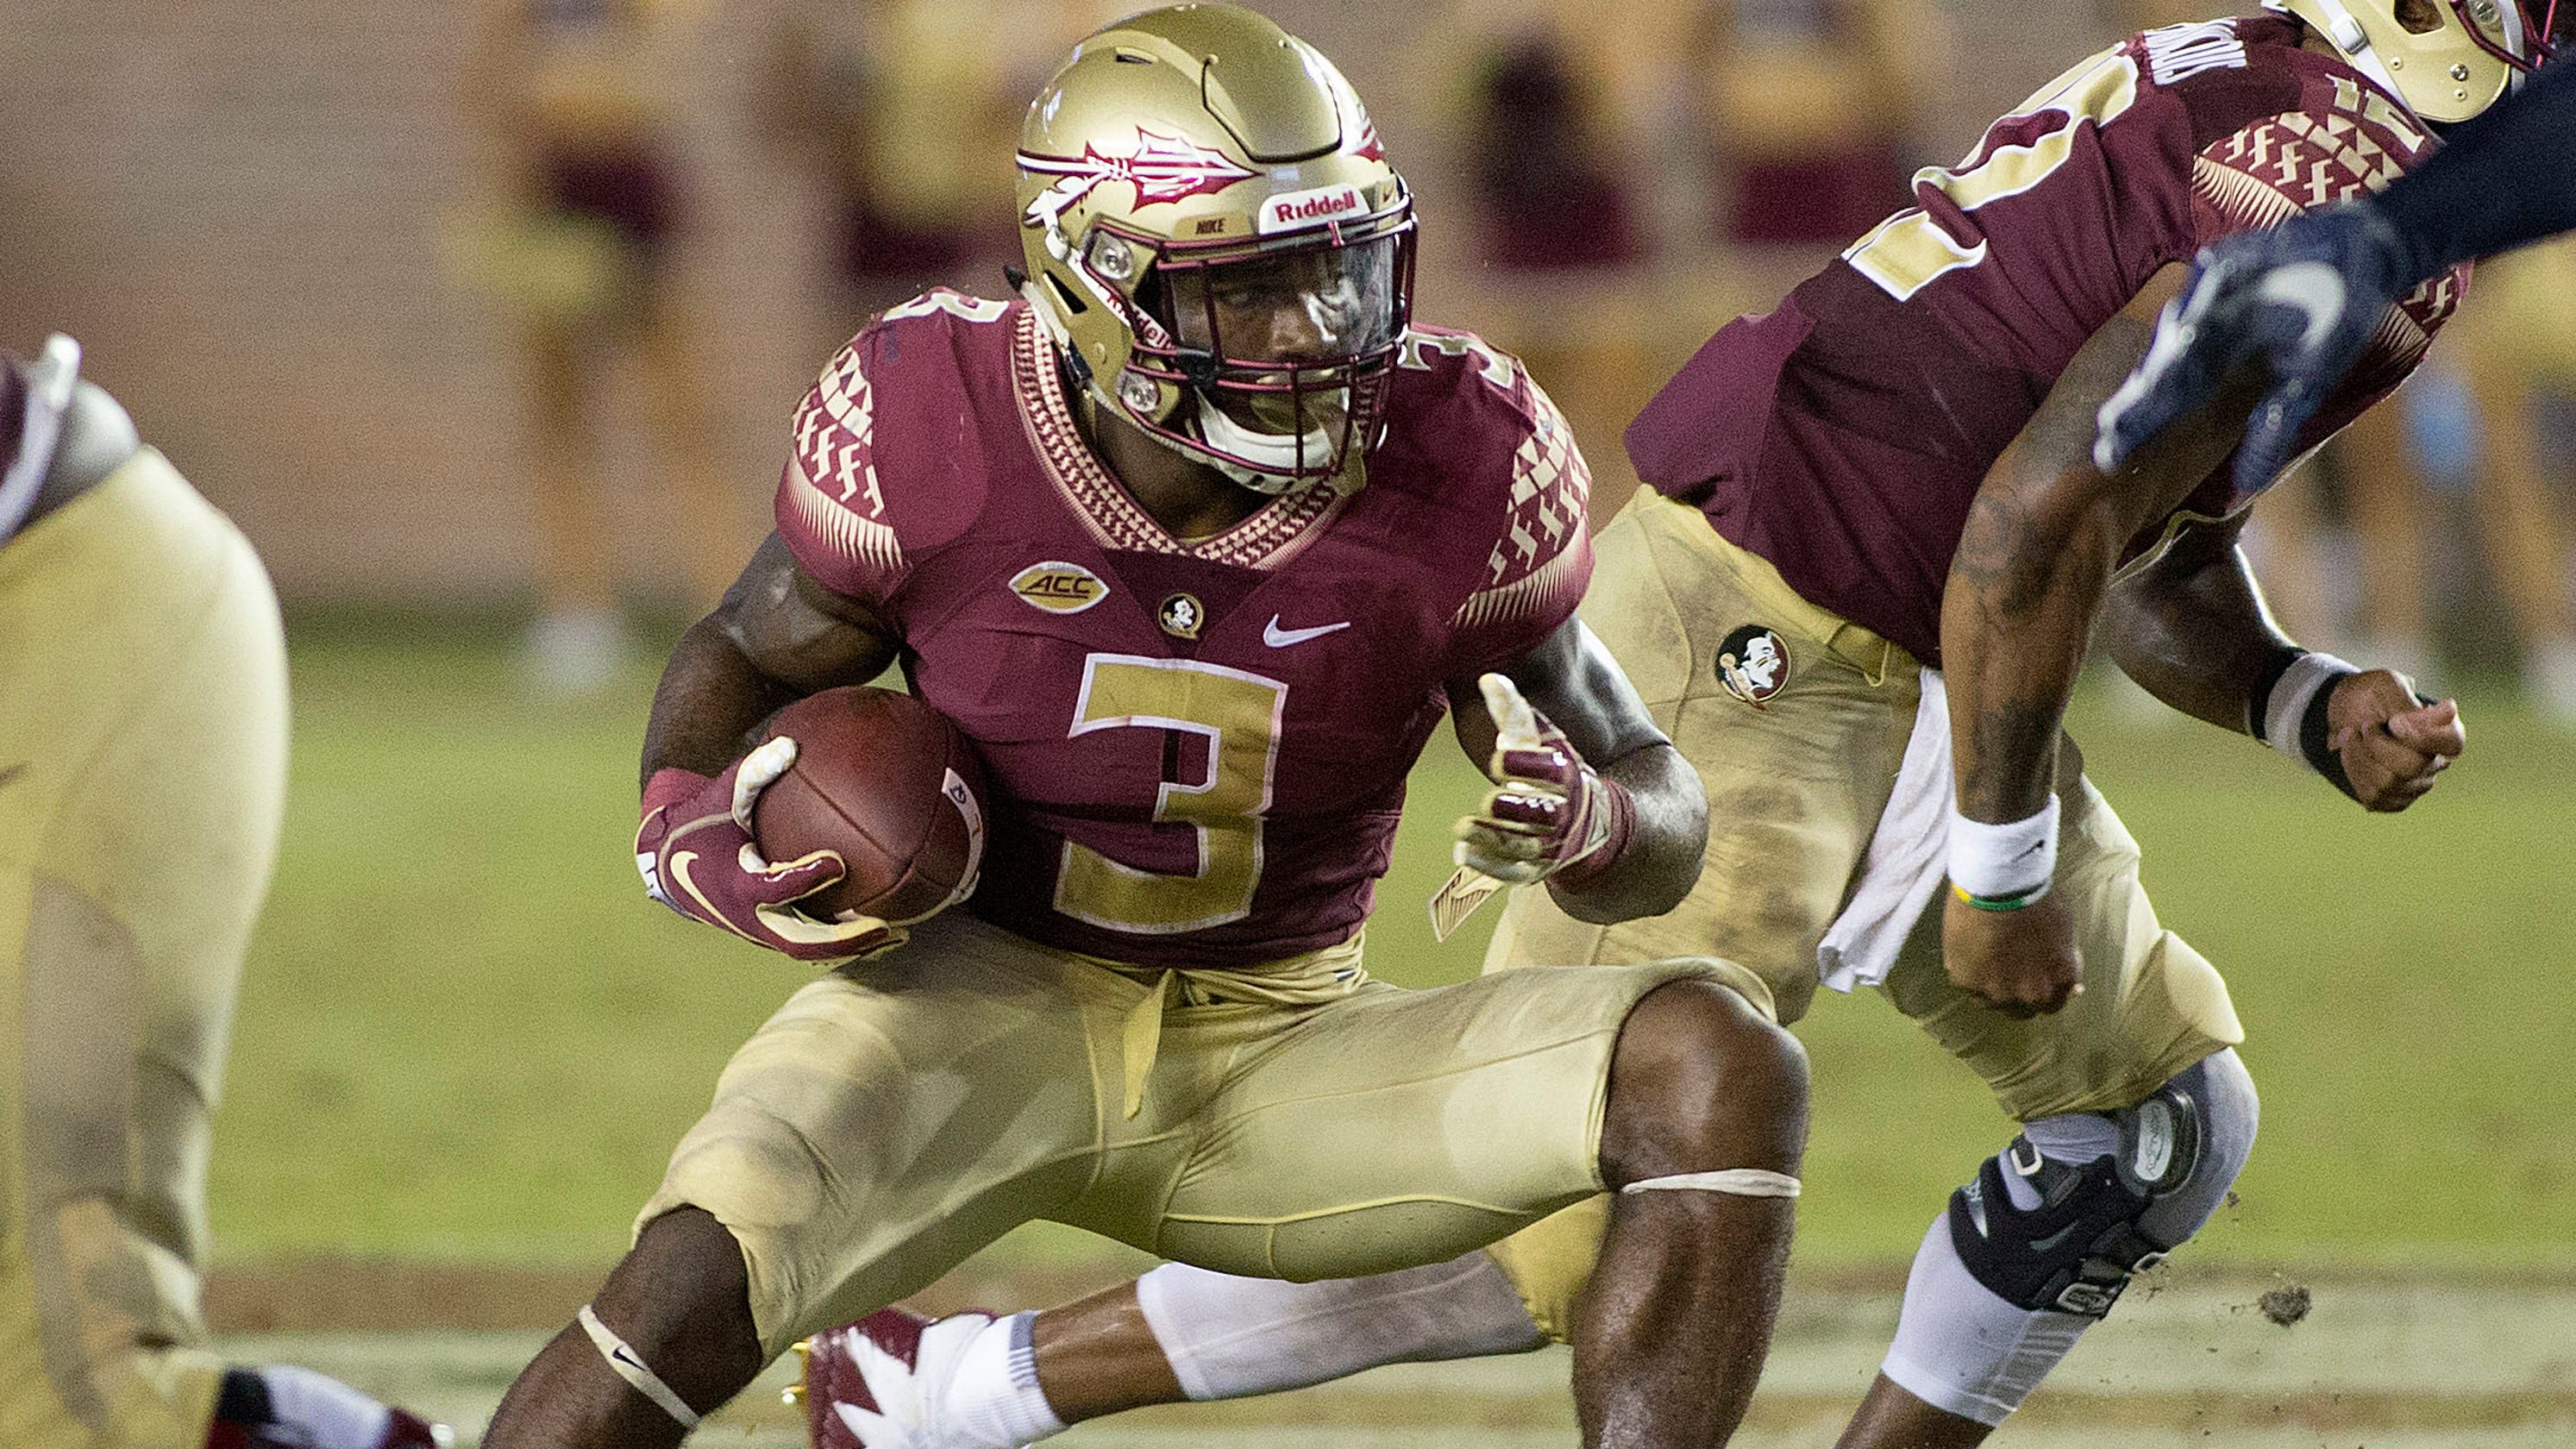 Florida State football  Watch RB Cam Akers score touchdown with spectacular  catch c719875c3